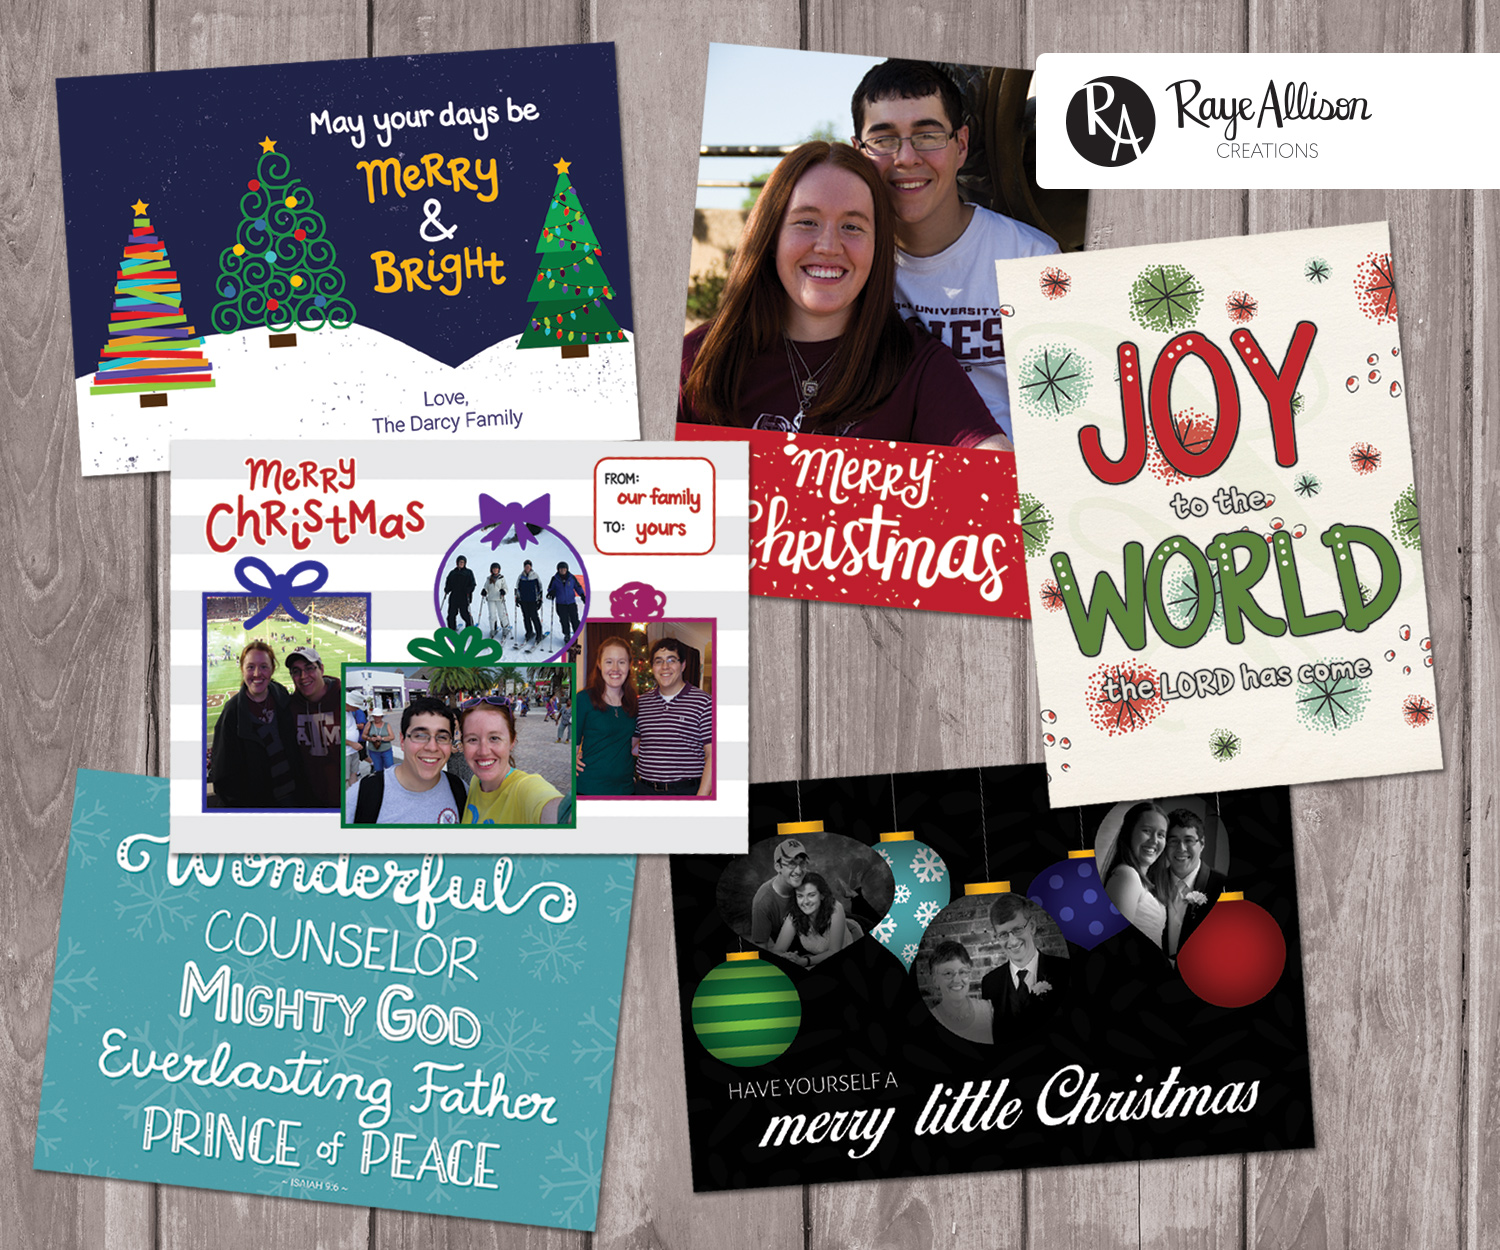 The 2017 Christmas Cards from RayeAllisonCreations are now available on Etsy. Click to read more about each of the cards and how you can customize and personalize for your family this year.